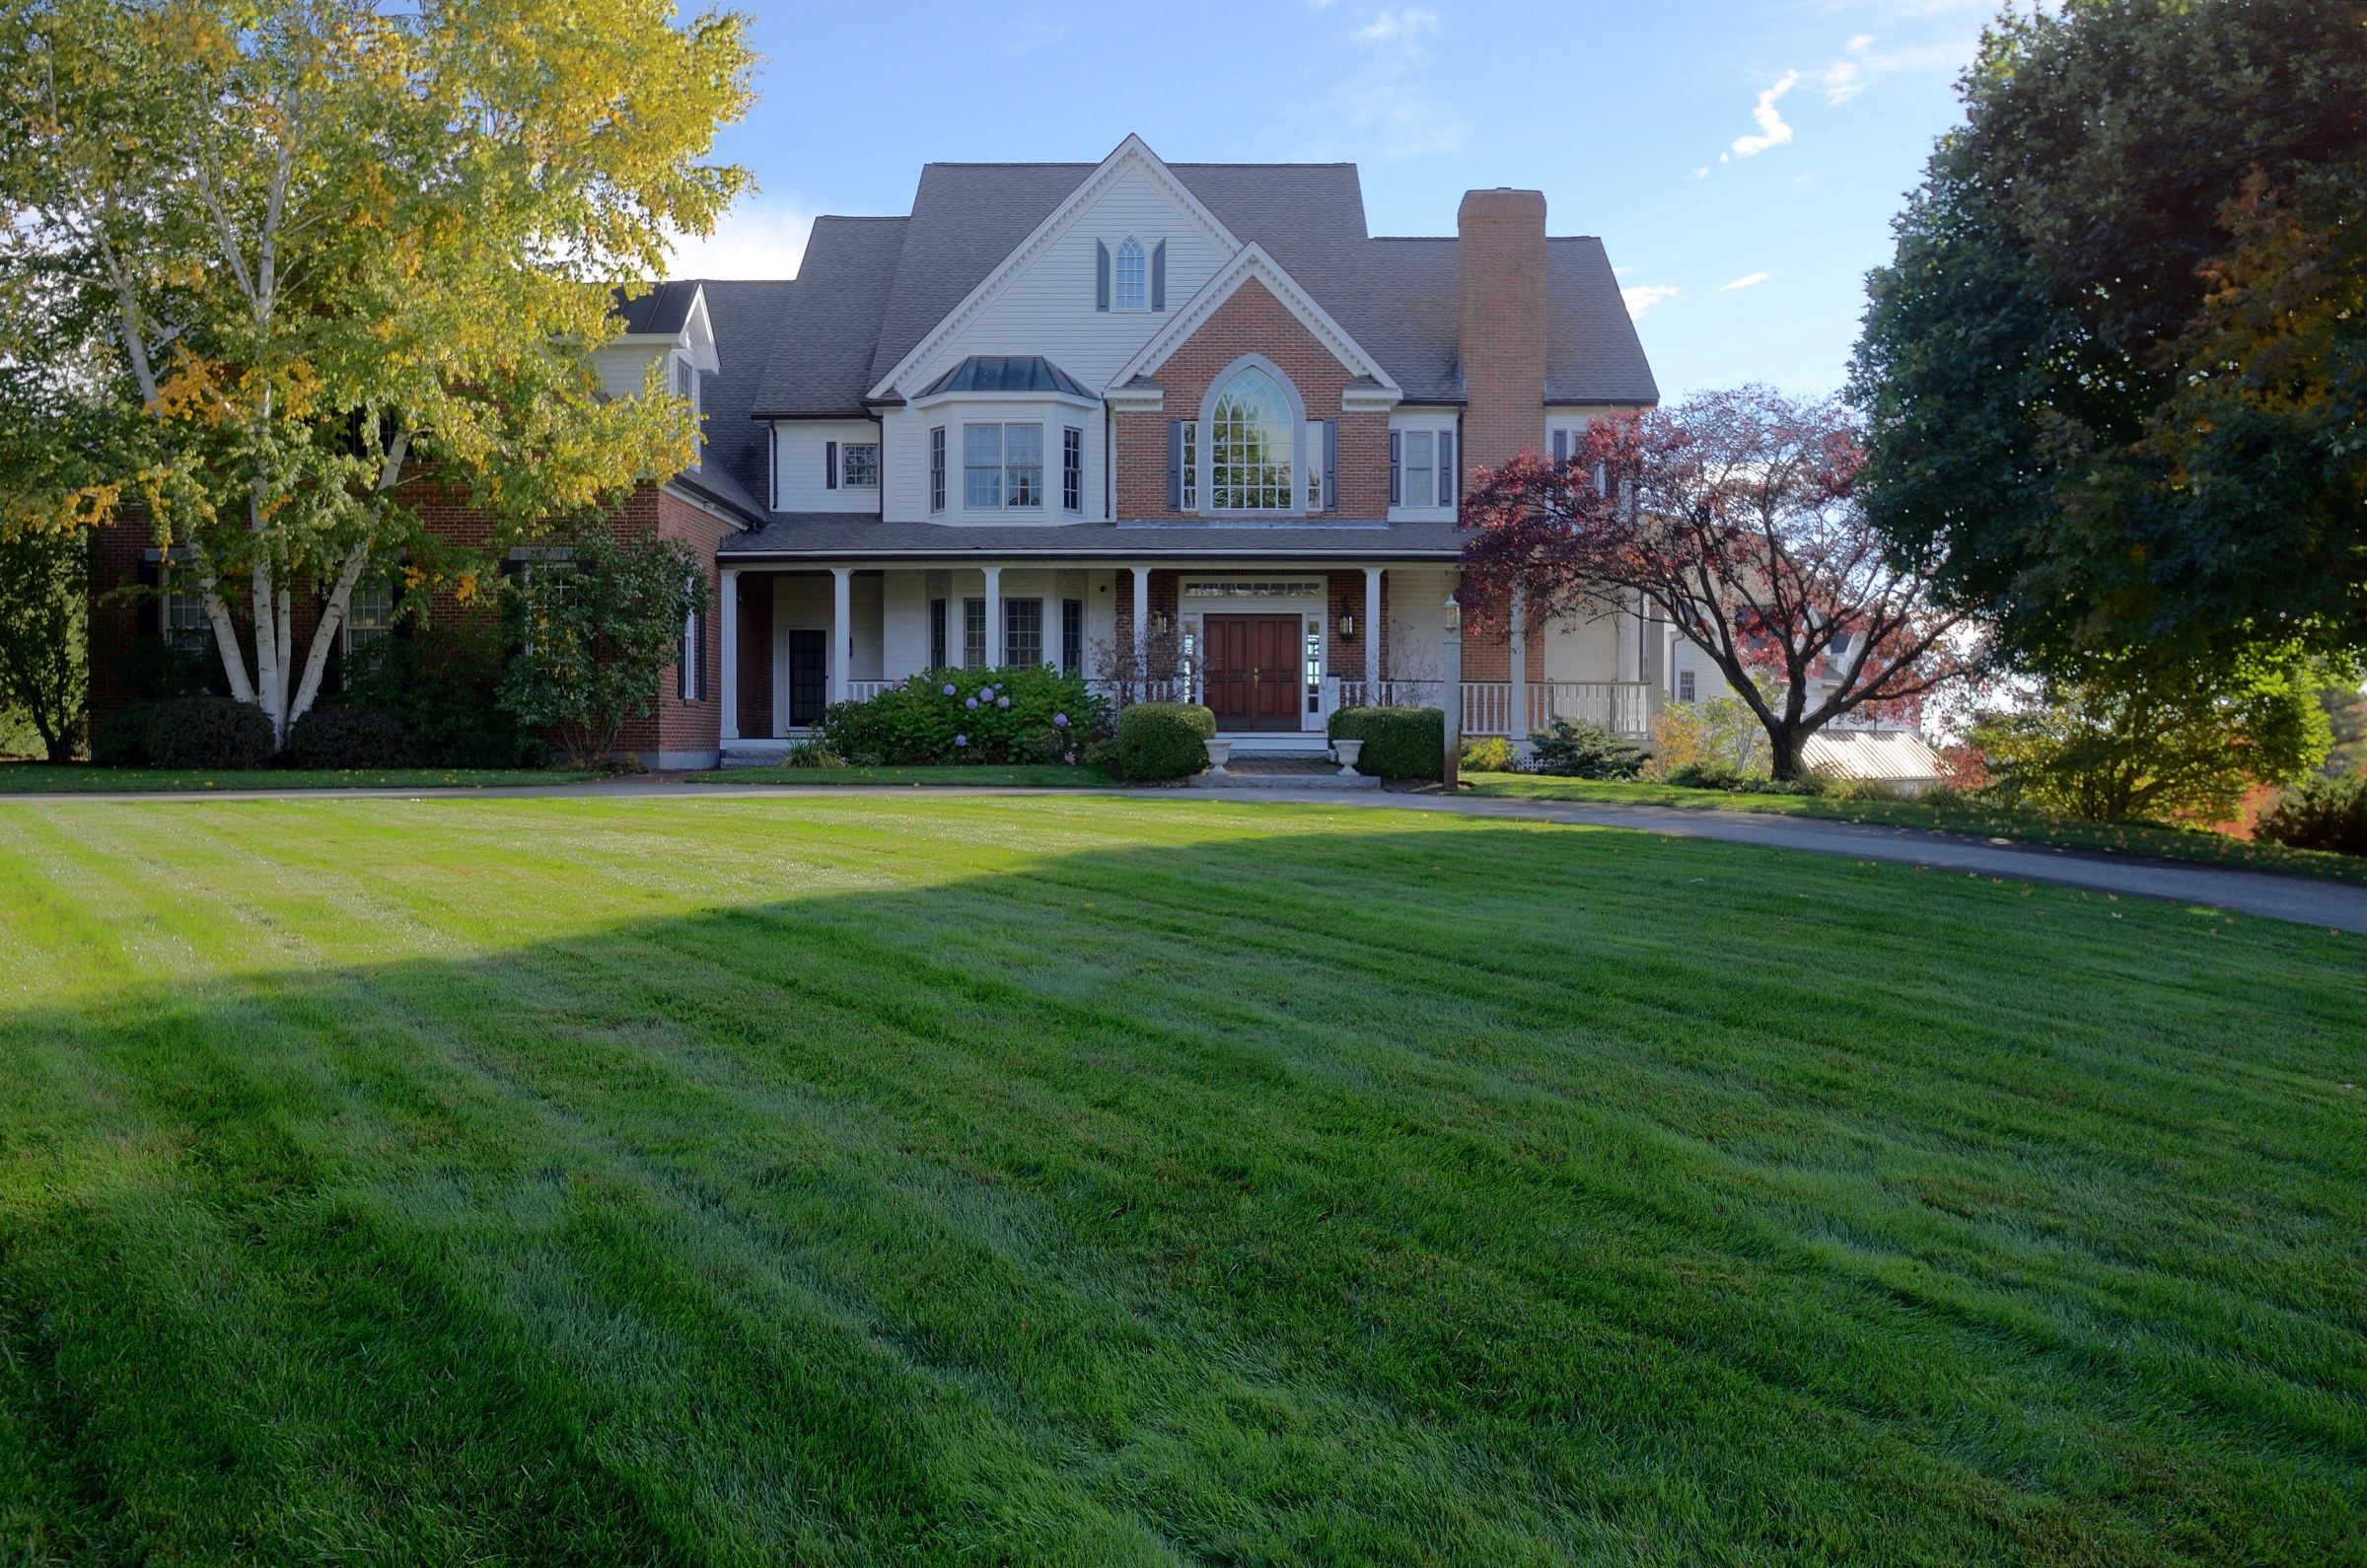 Single Family Home for Sale at 1 Fellows Farm Rd, Amherst Amherst, New Hampshire, 03031 United States